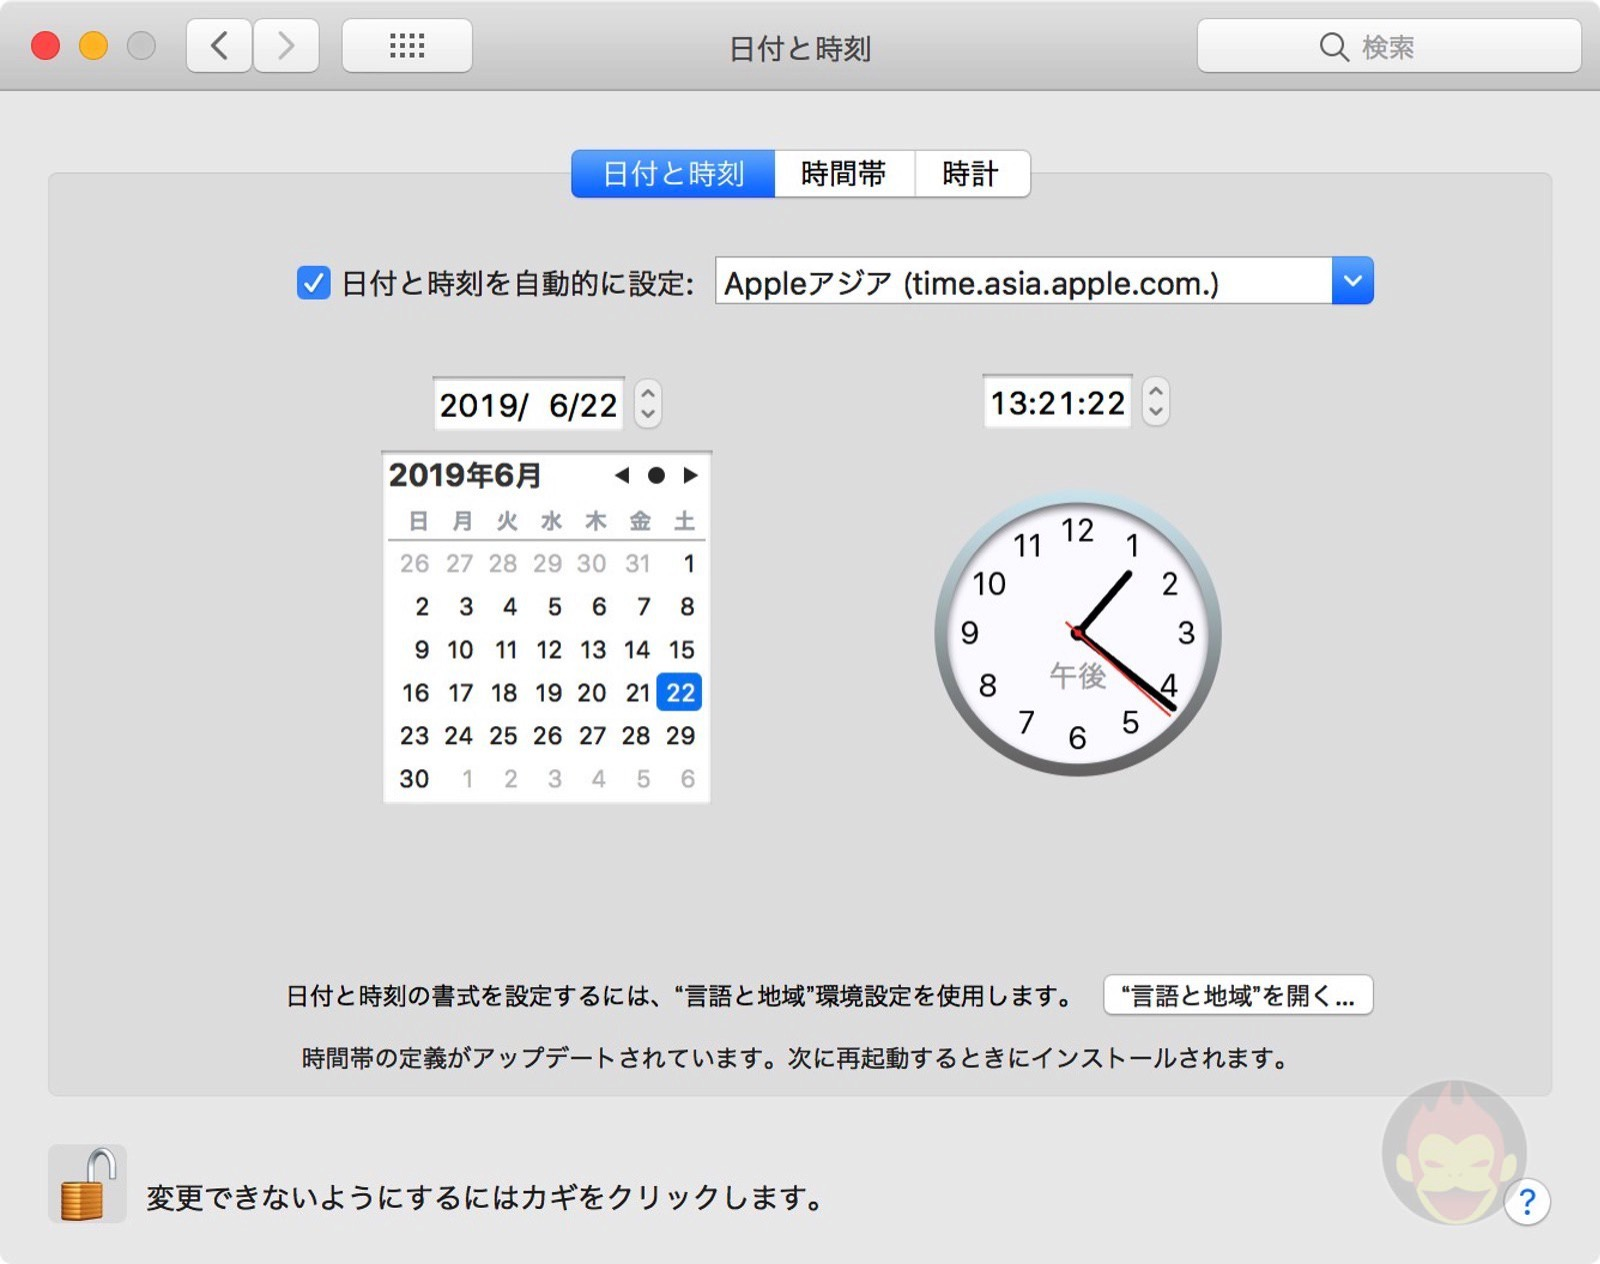 Mac Time is wrong 02